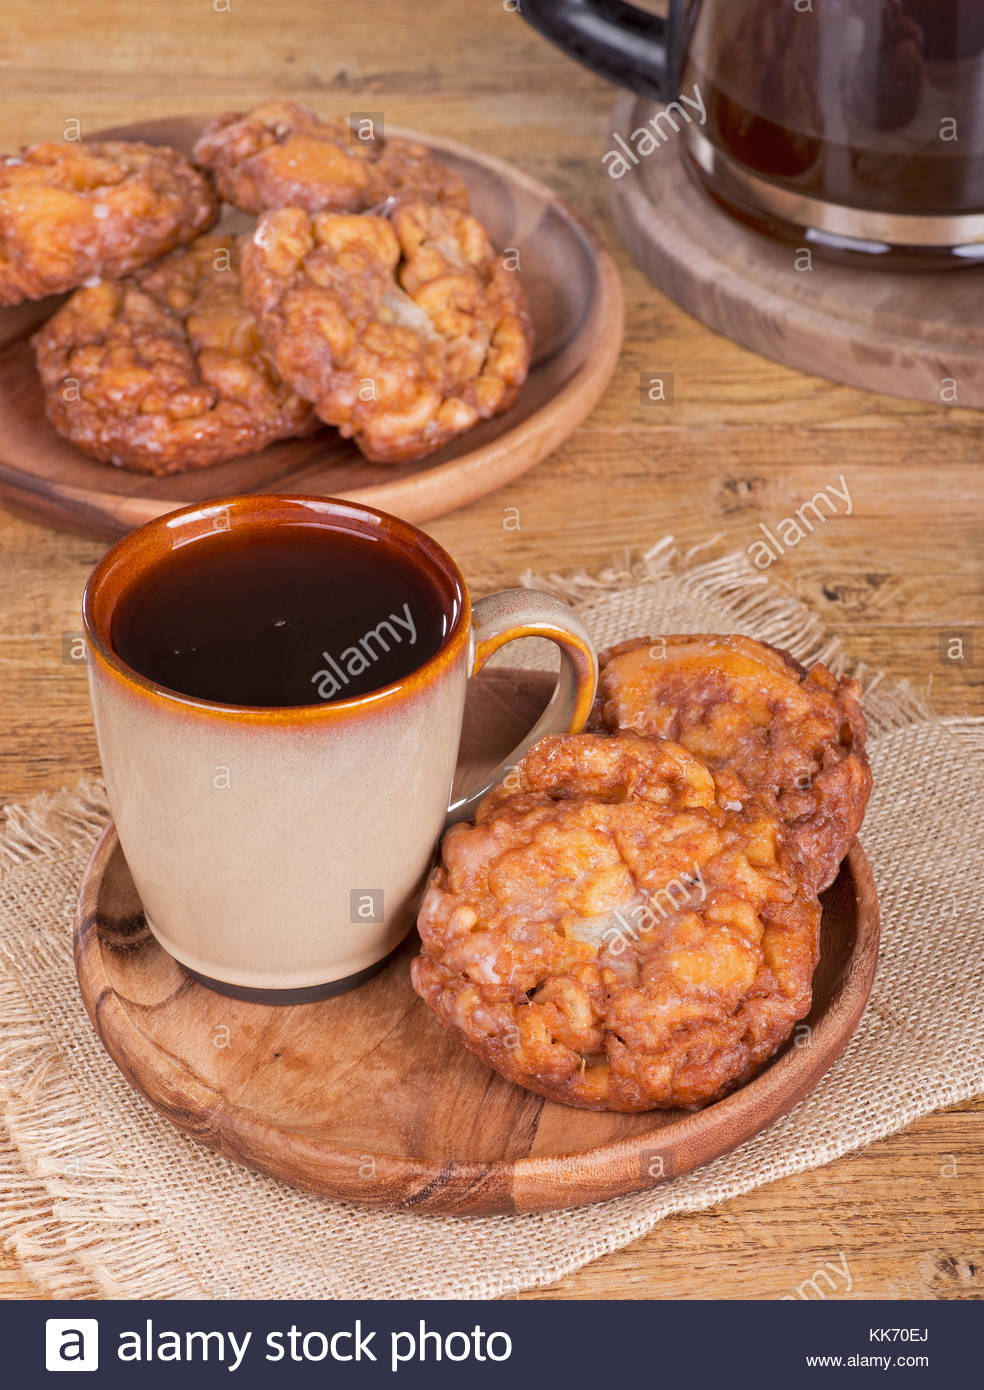 Name:  glazed-apple-fritters-and-cup-of-coffee-on-a-wooden-plate-KK70EJ.jpg Views: 20 Size:  241.3 KB